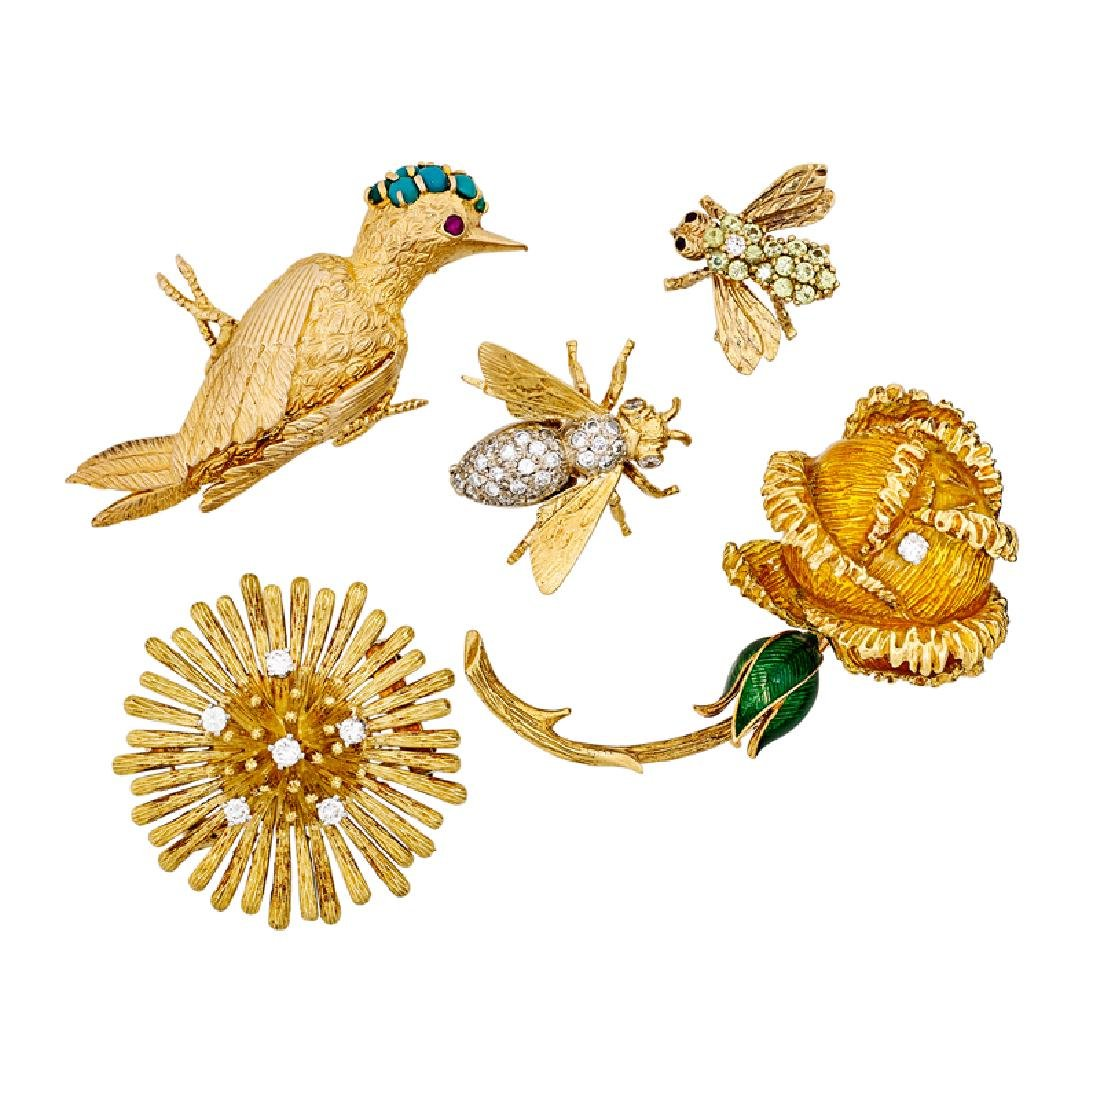 WHIMSICAL DIAMOND OR GEM SET YELLOW GOLD BROOCHES